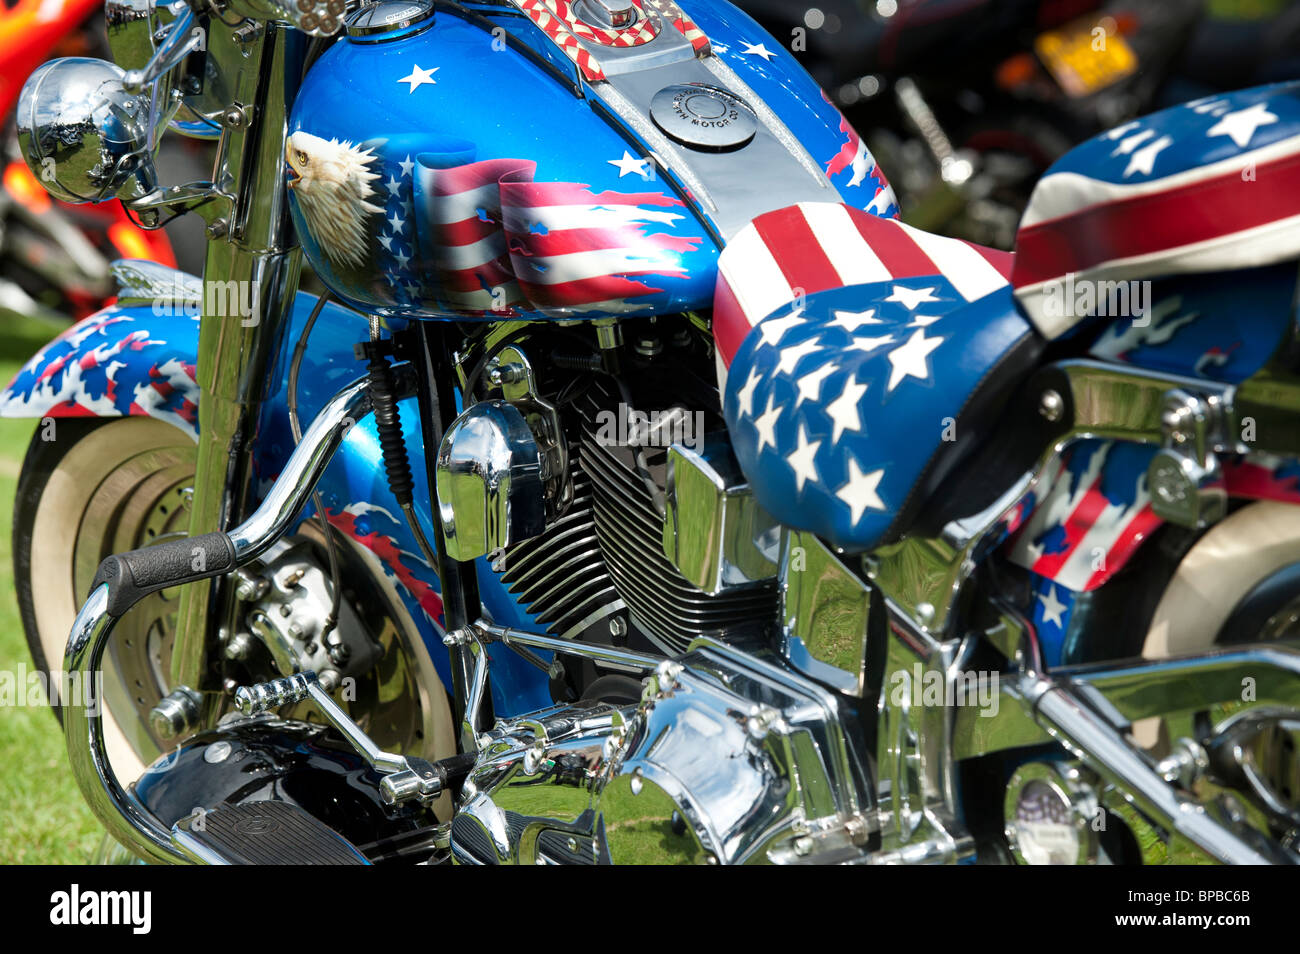 Harley Davidson Motorcycle With Custom American Flag Paint Work Stock Photo Alamy